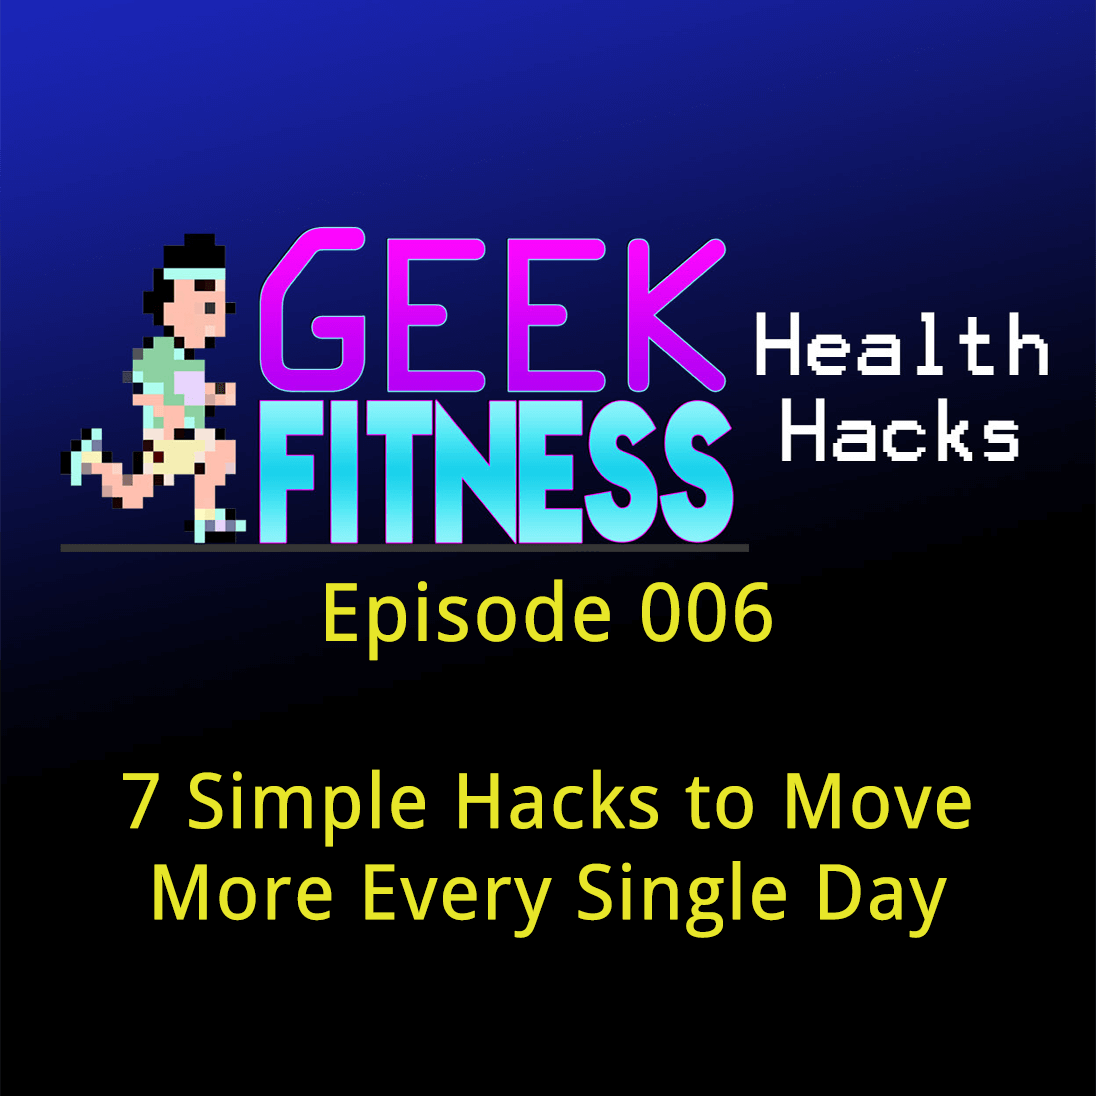 7 Simple Hacks to Move More Every Single Day (Geek Fitness Health Hacks, Episode 006)